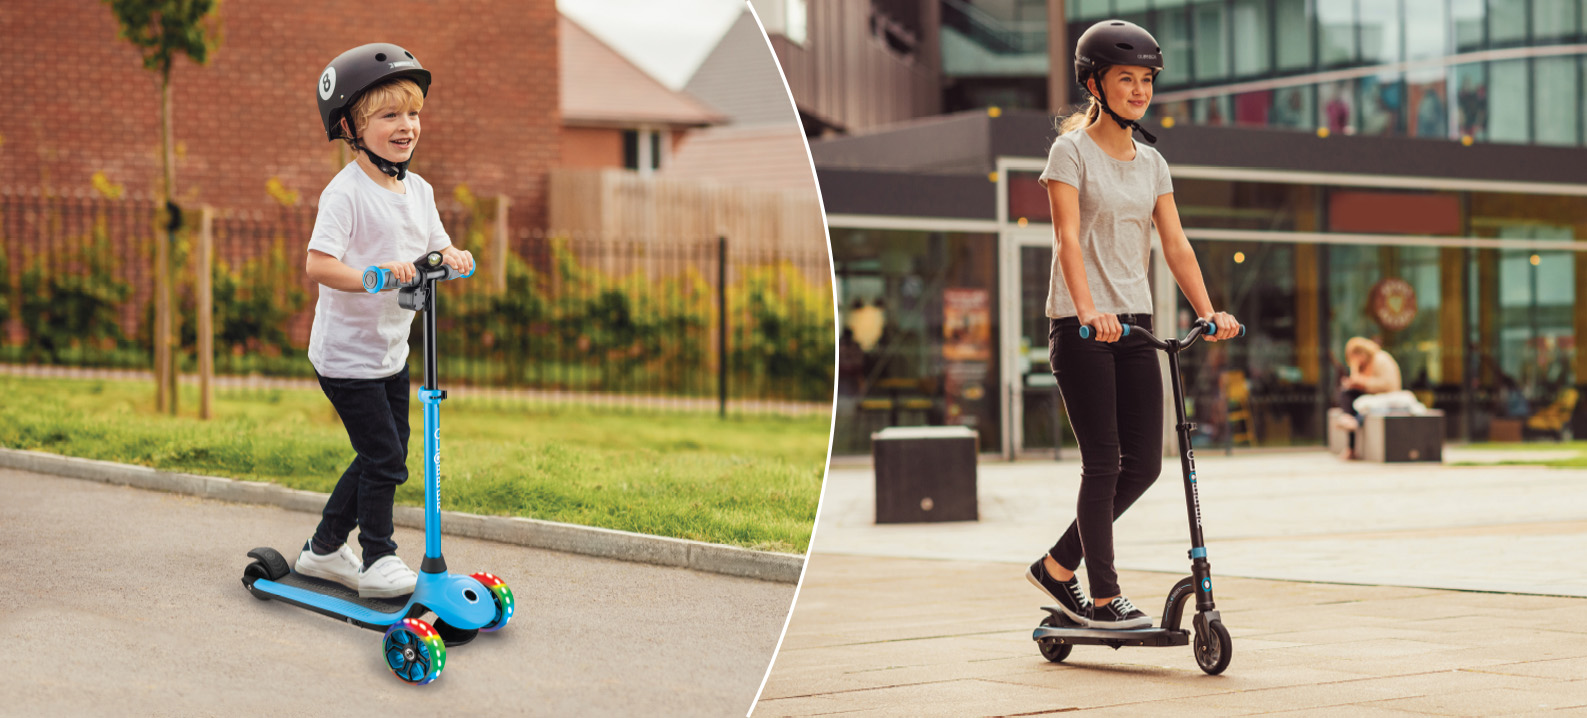 Cover image of Best Electric Scooters for Kids: 5 Important Factors to Consider